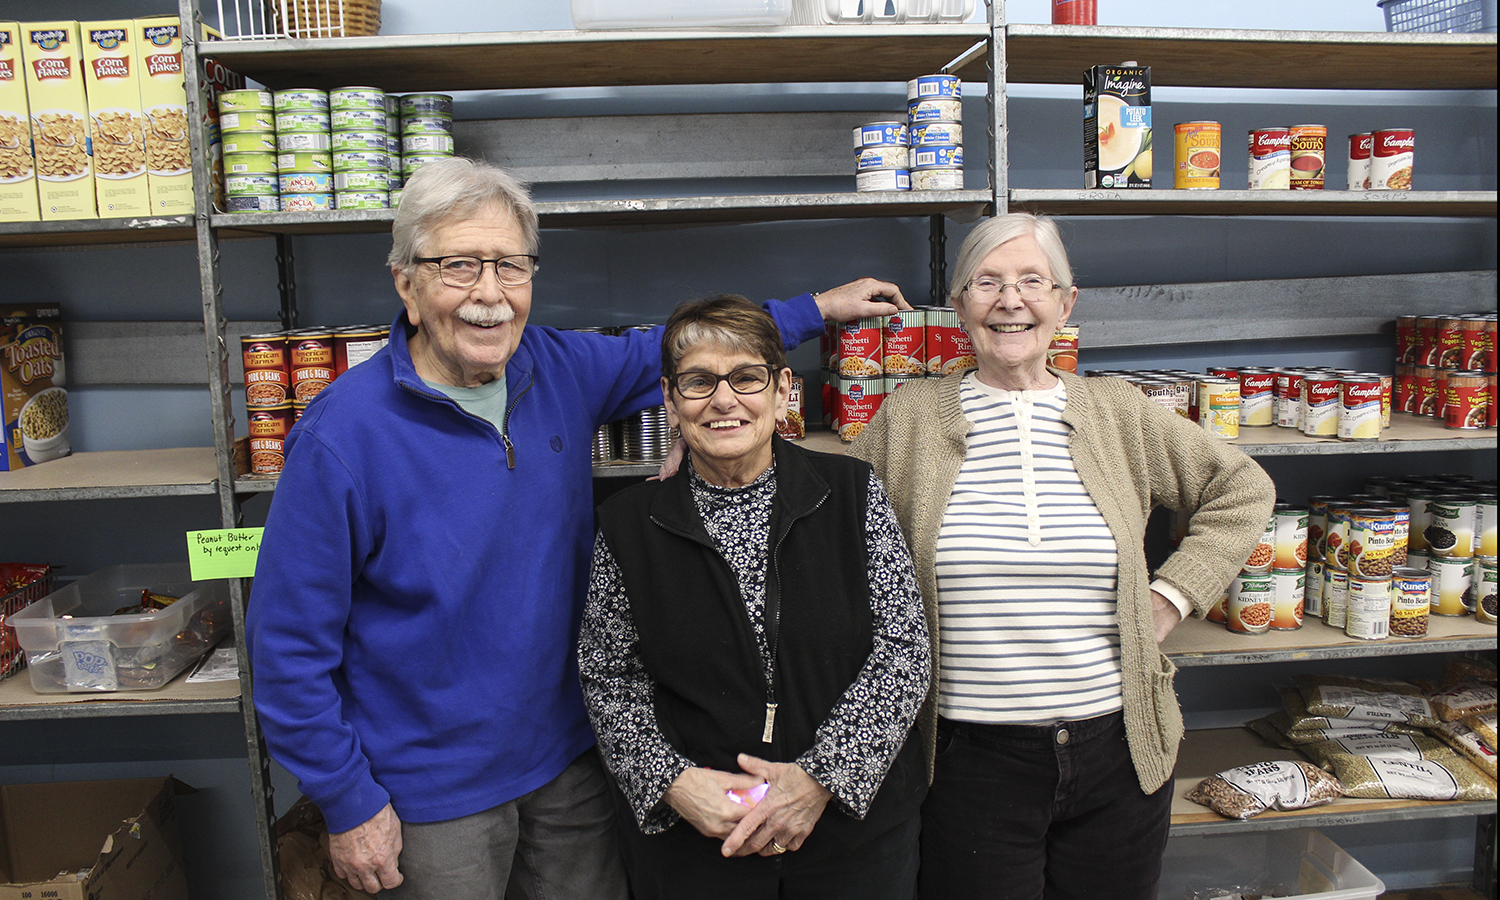 HWS Professor Emeritus of English James Crenner and community members Linda Beckley and Sue Garver stop for a photo while volunteering at the Center of Concern on Tuesday morning. Professor Emeritus of Biology Thomas Glover serves as the president of the Center's board of directors.